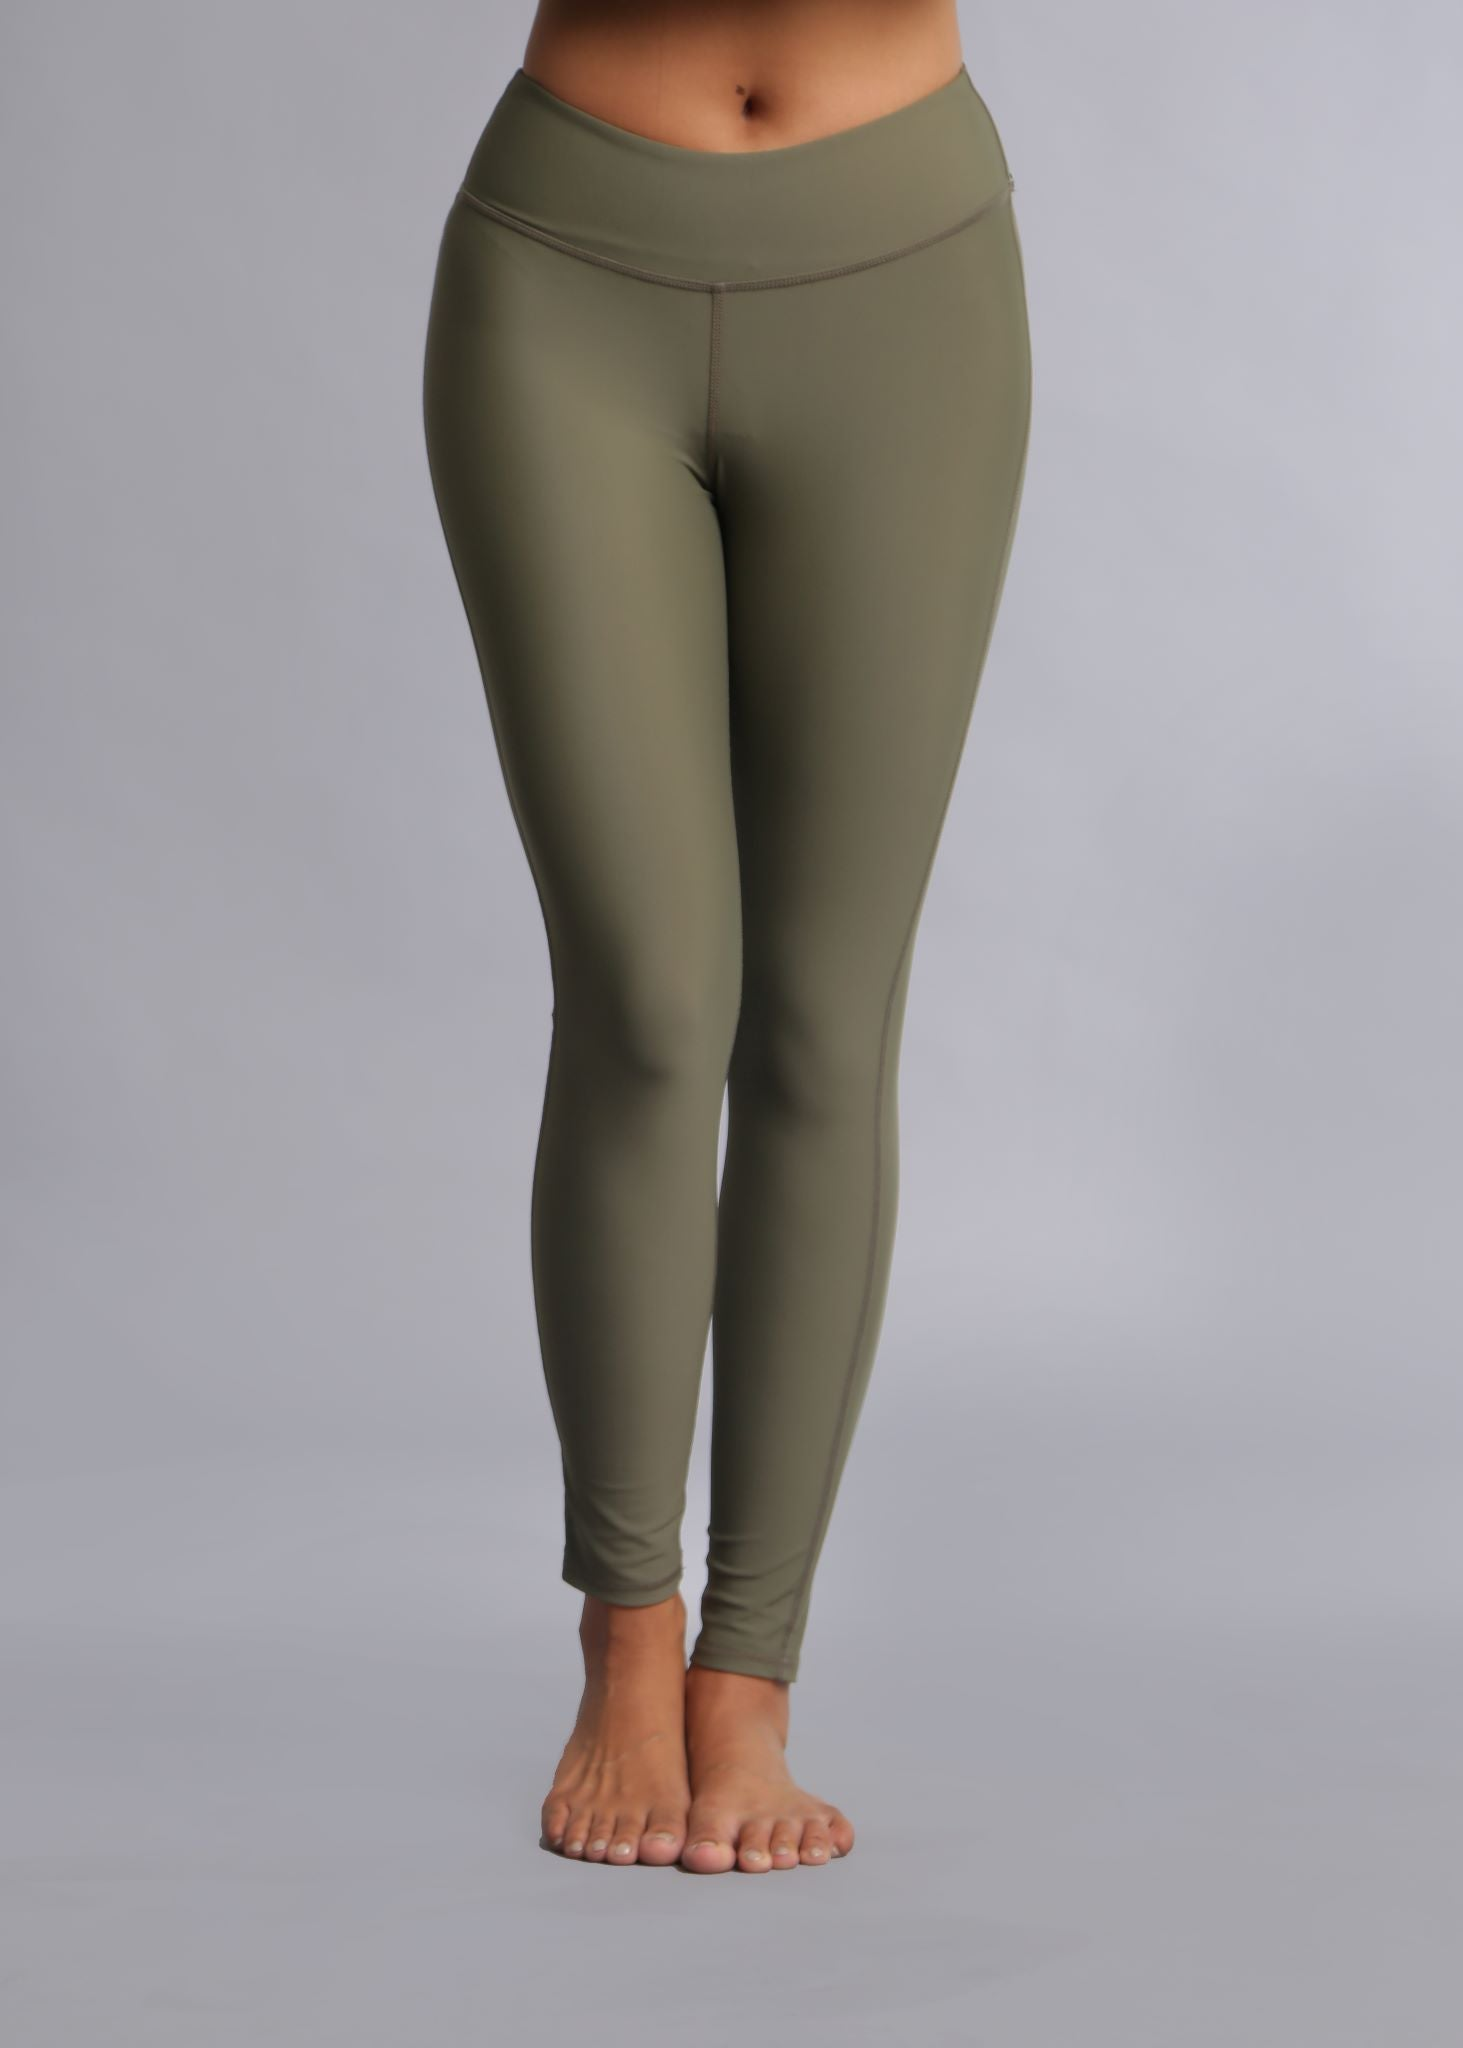 Diana Dusty Olive Swimsuit